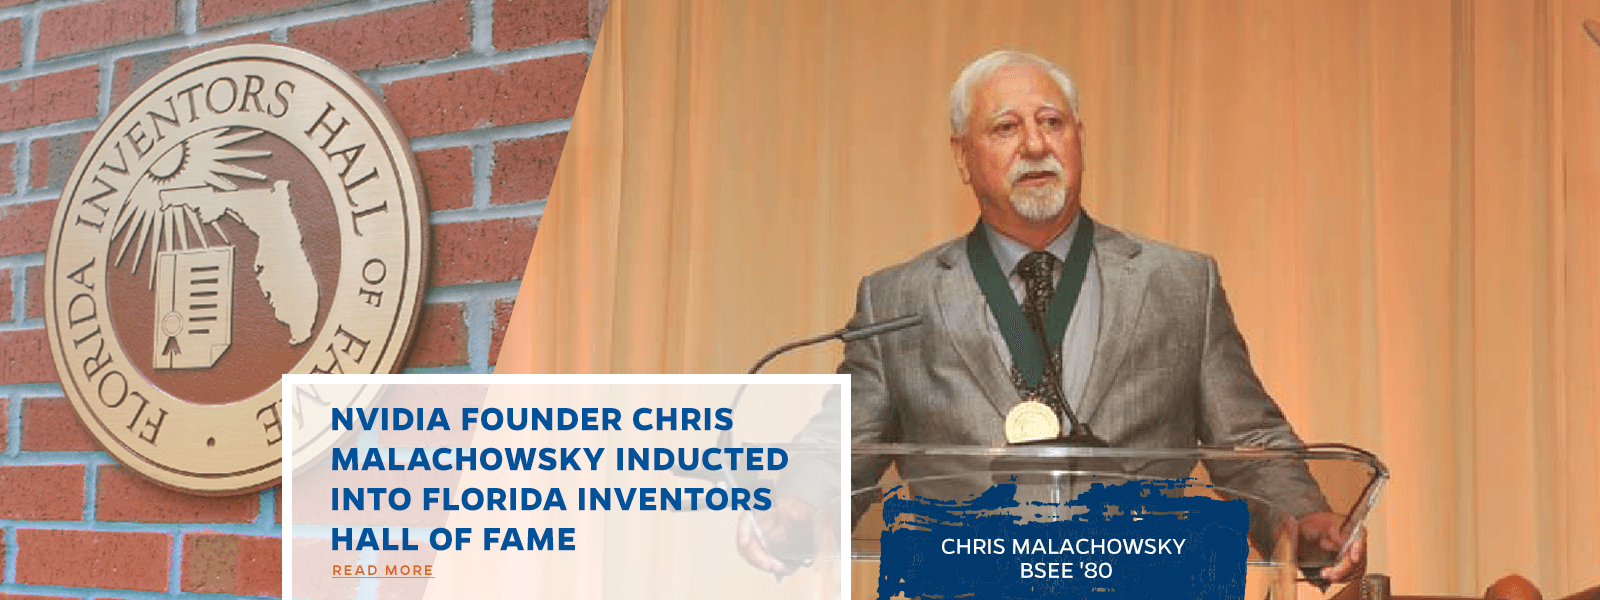 NVIDIA Founder Chris Malachowsky Inducted Into Florida Inventors Hall Of Fame